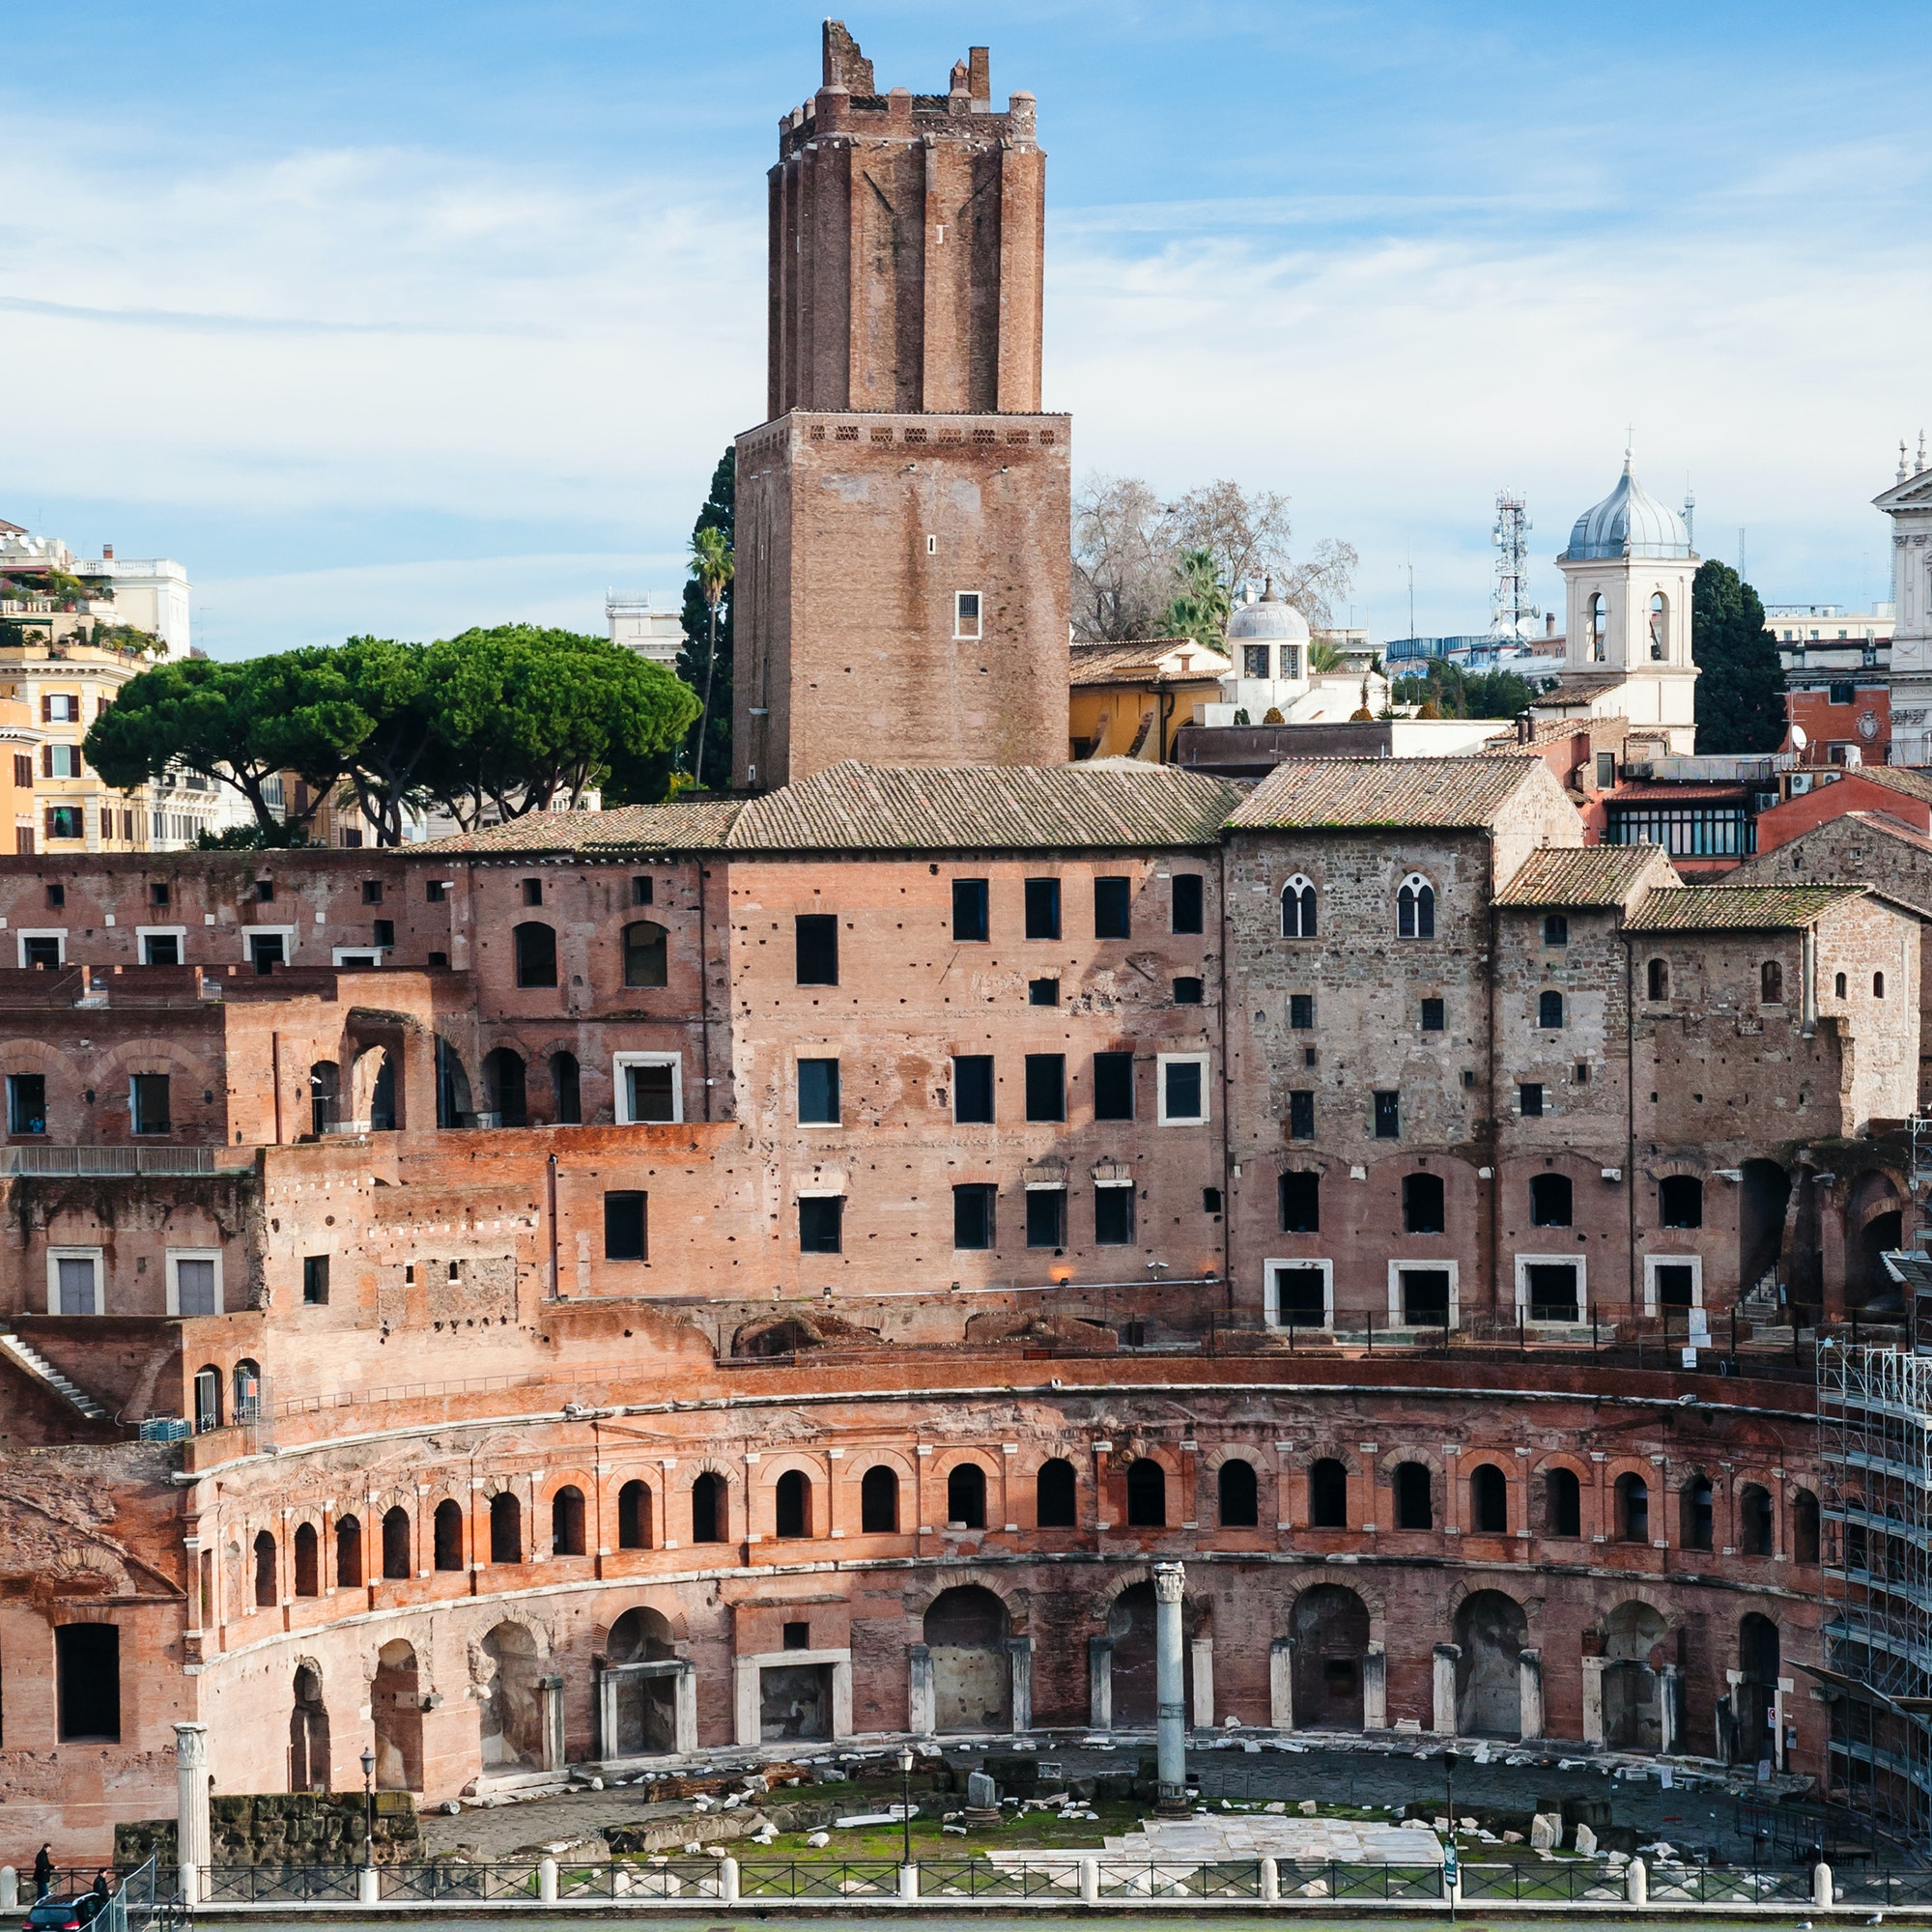 ancient trajan's market in roman forum in Rome